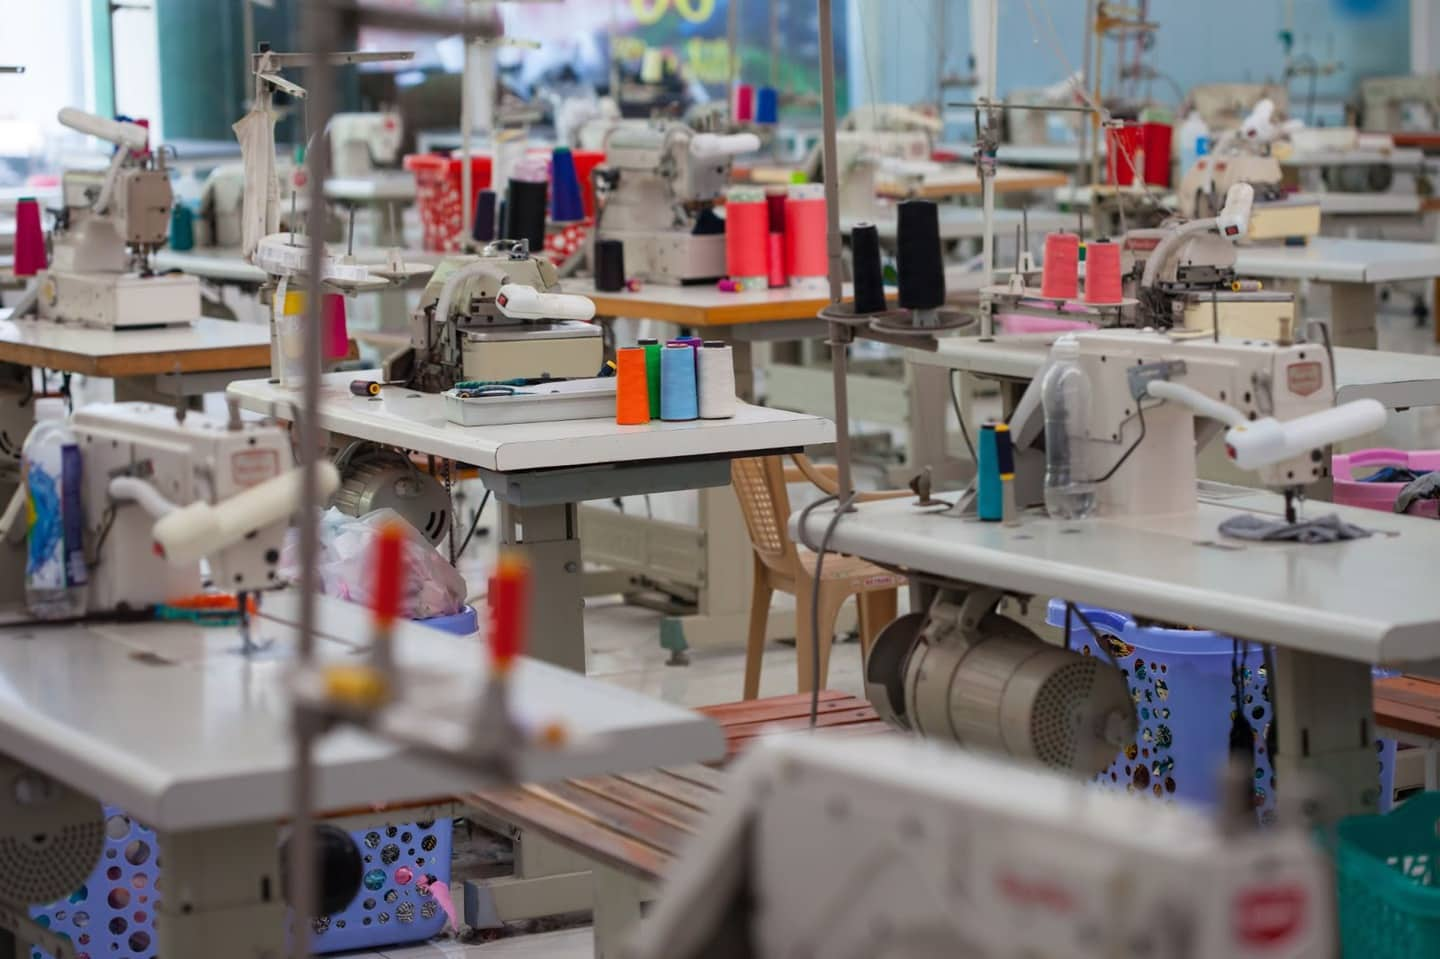 Sewing machines in a sew contractor facility